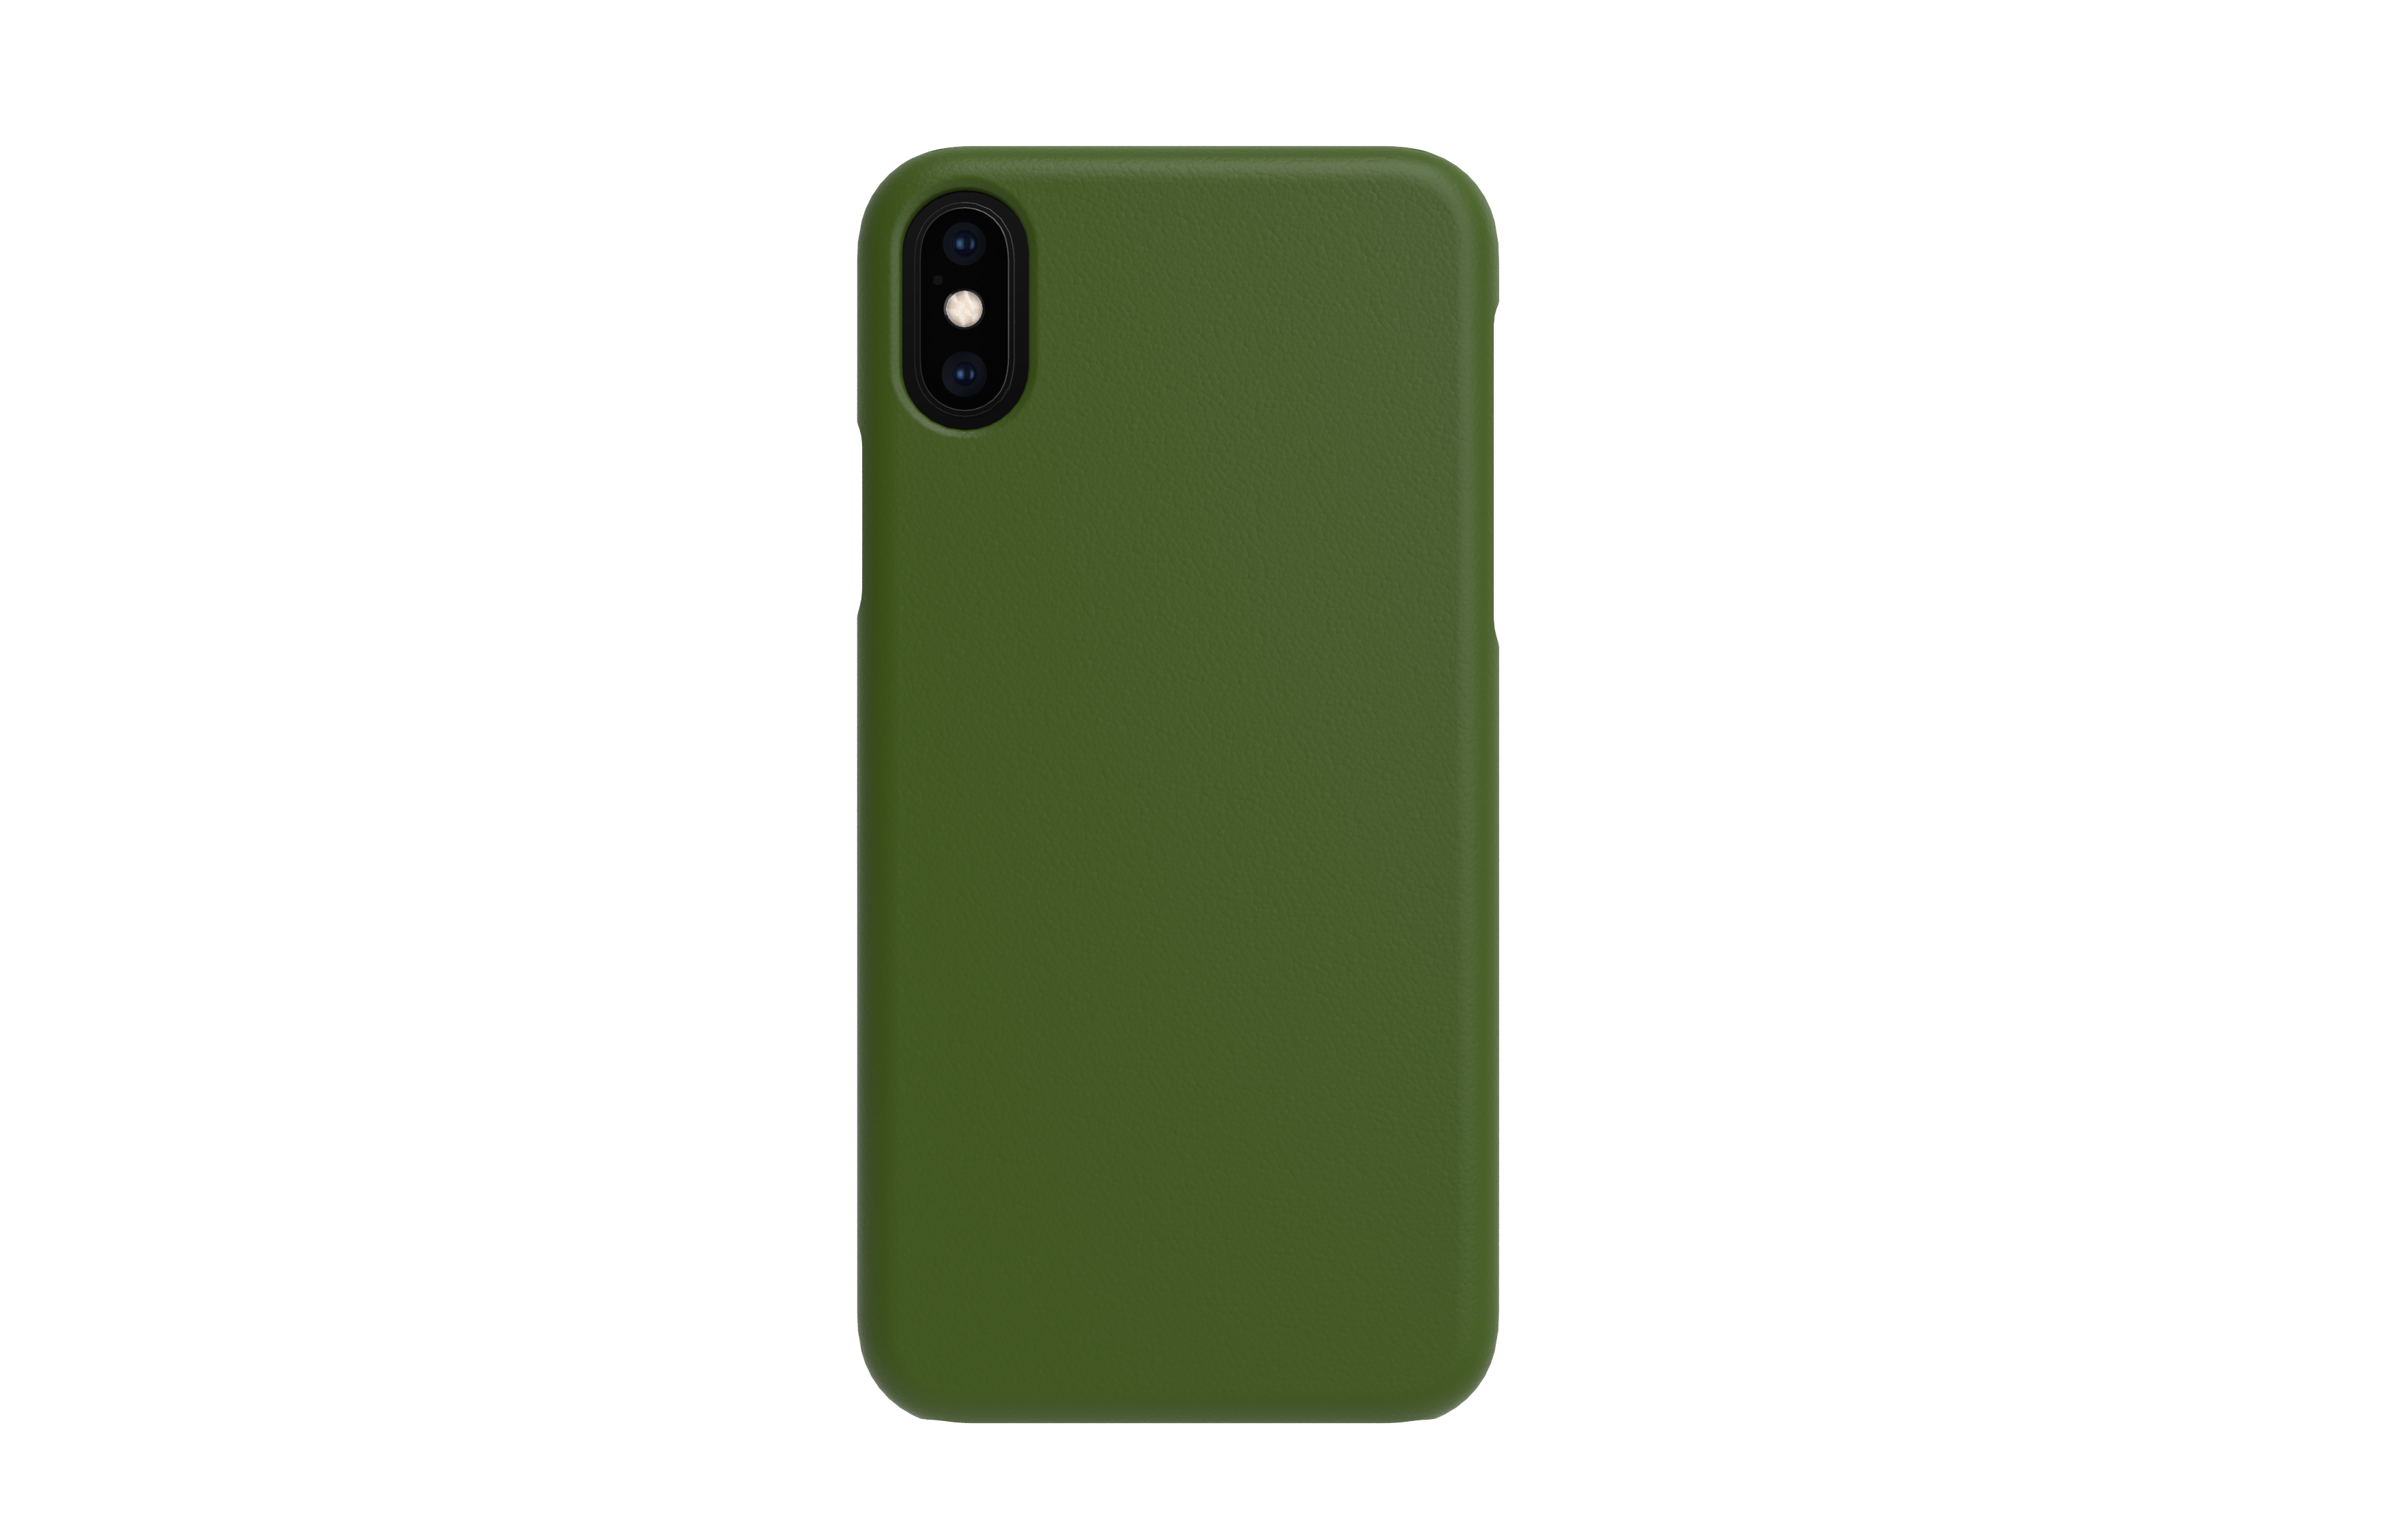 iphoneX green-1